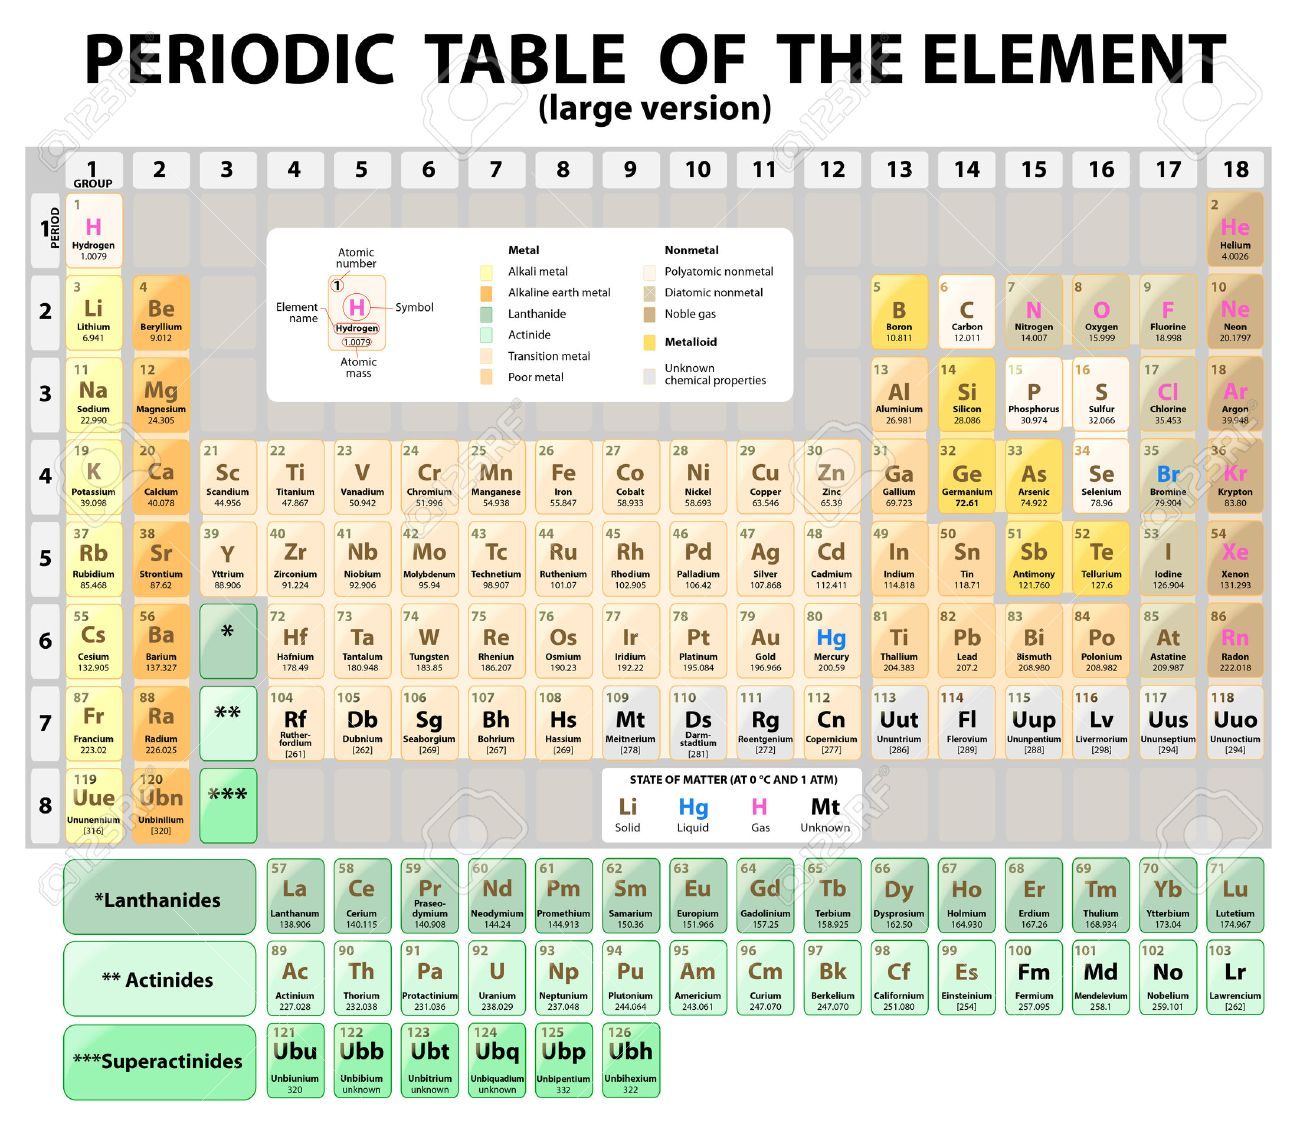 Periodic table of the elements with atomic number symbol and periodic table of the elements with atomic number symbol and weight large version gamestrikefo Images